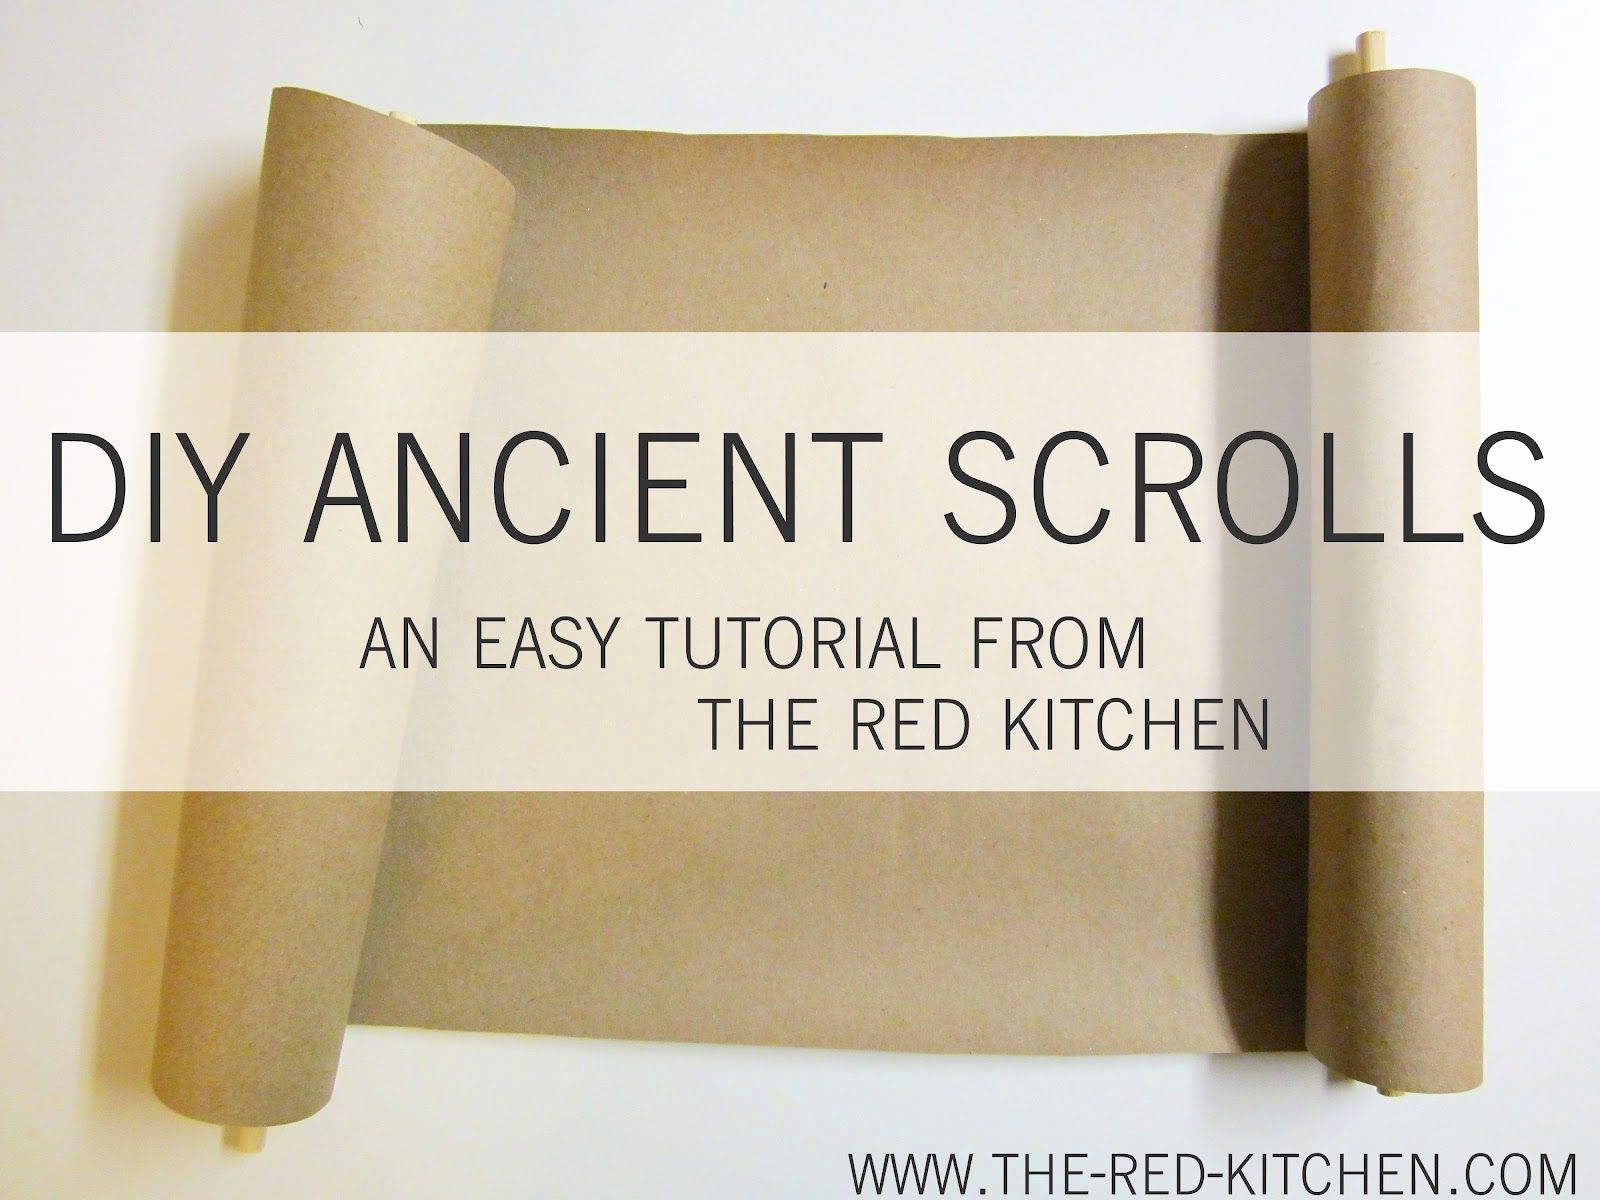 How to Make Scroll Invitation Inspirational the Red Kitchen Diy Ancient Scrolls Tutorial